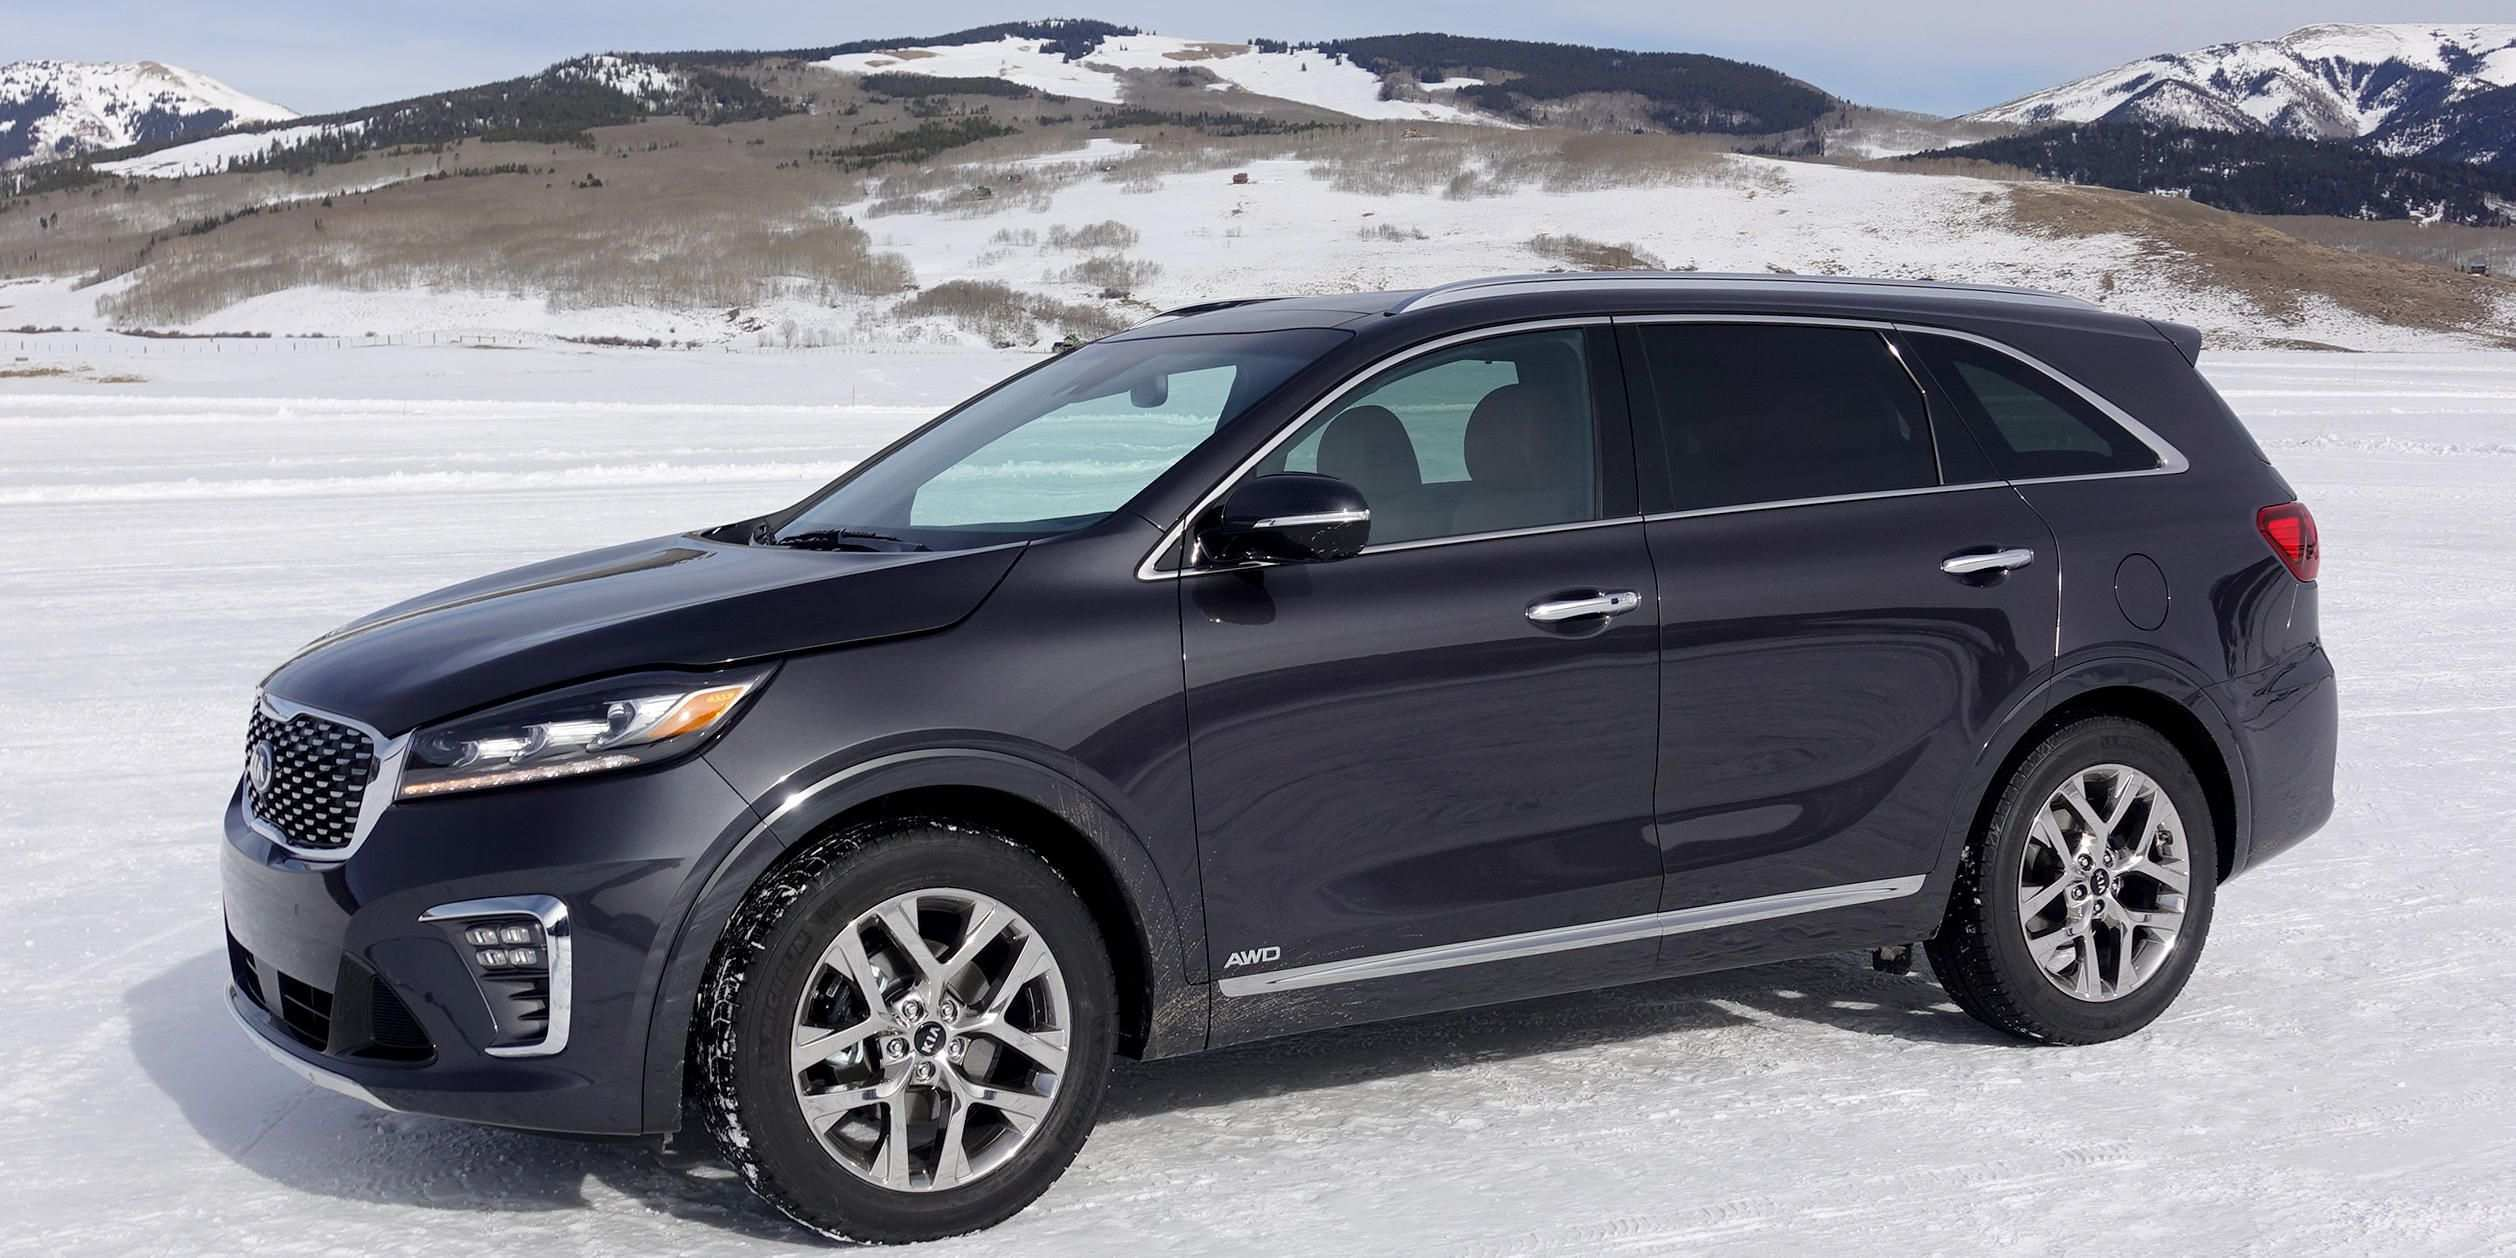 36 All New 2019 Kia Sorento Price And Review